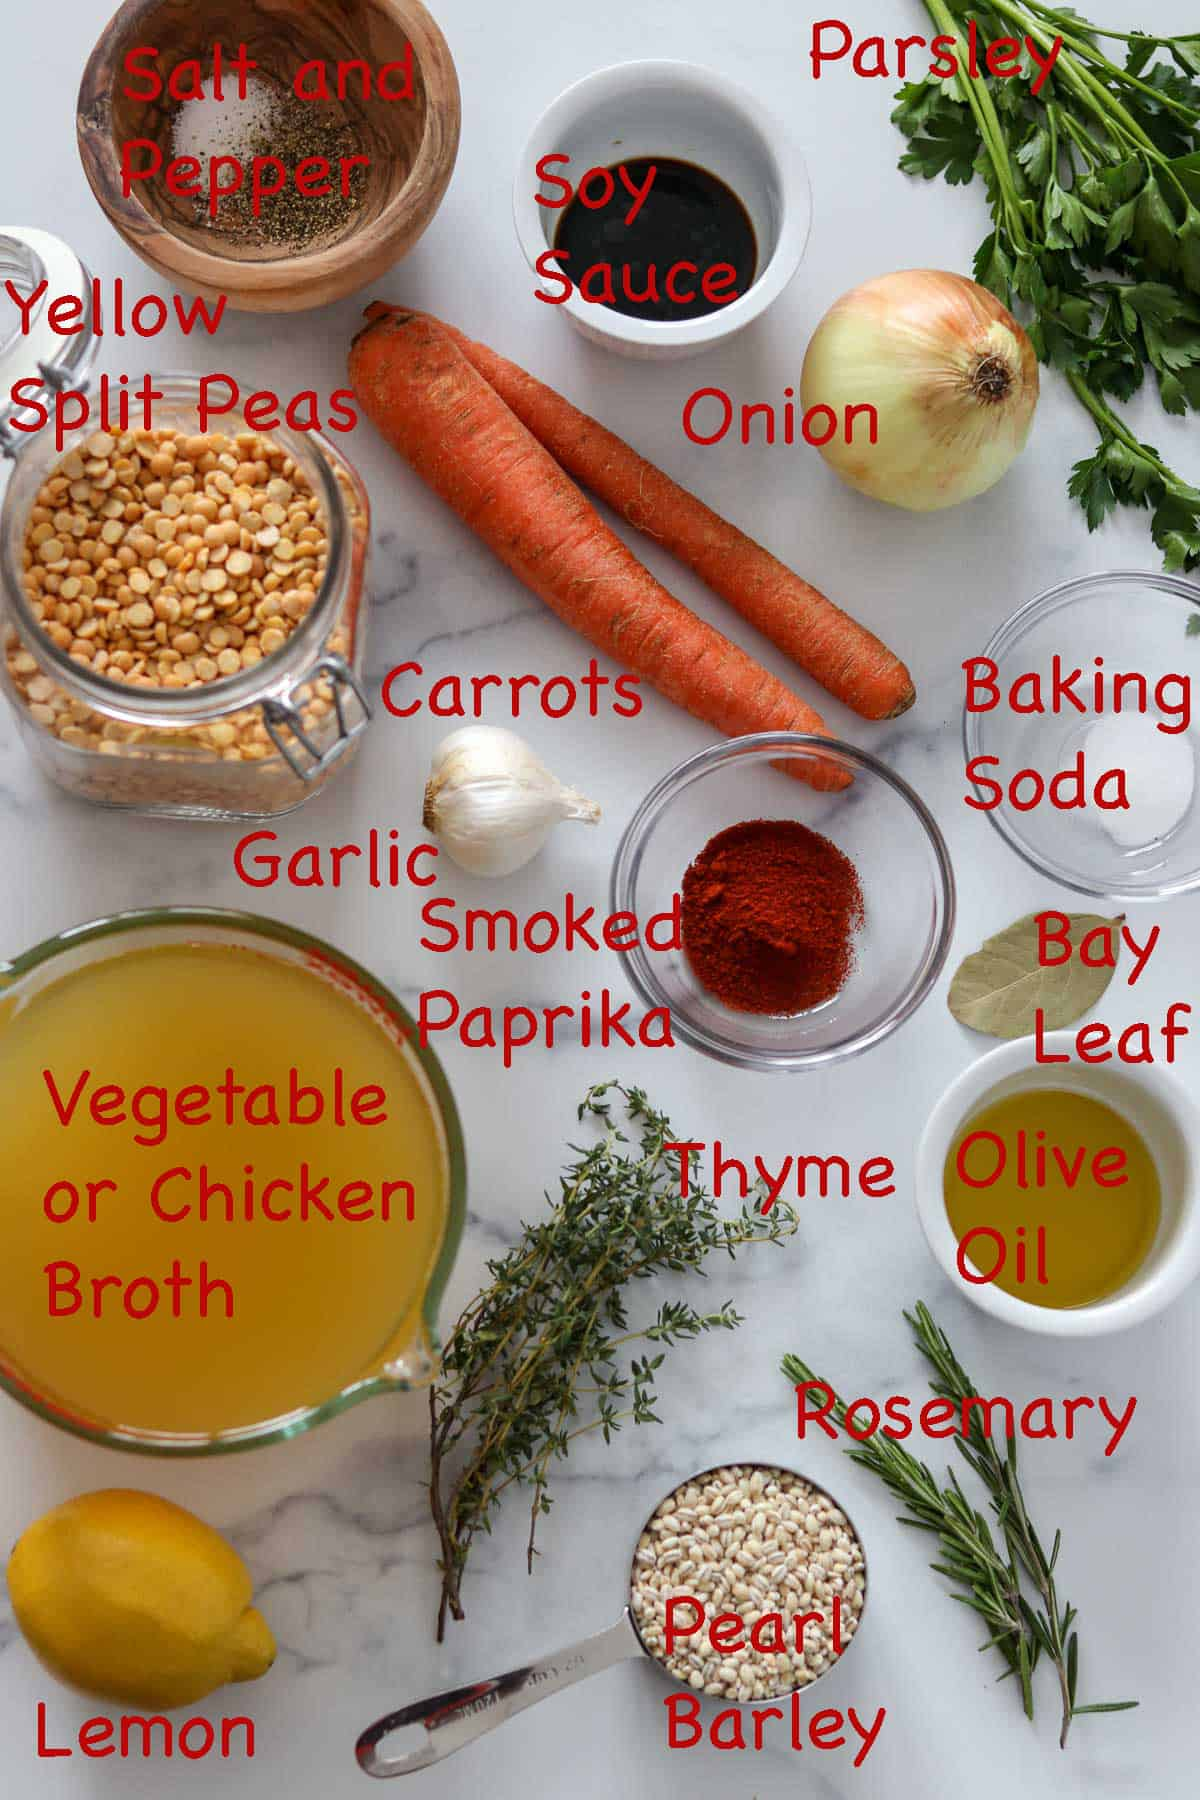 Labeled ingredients for Easy Vegetarian Split Pea Soup with Barley.